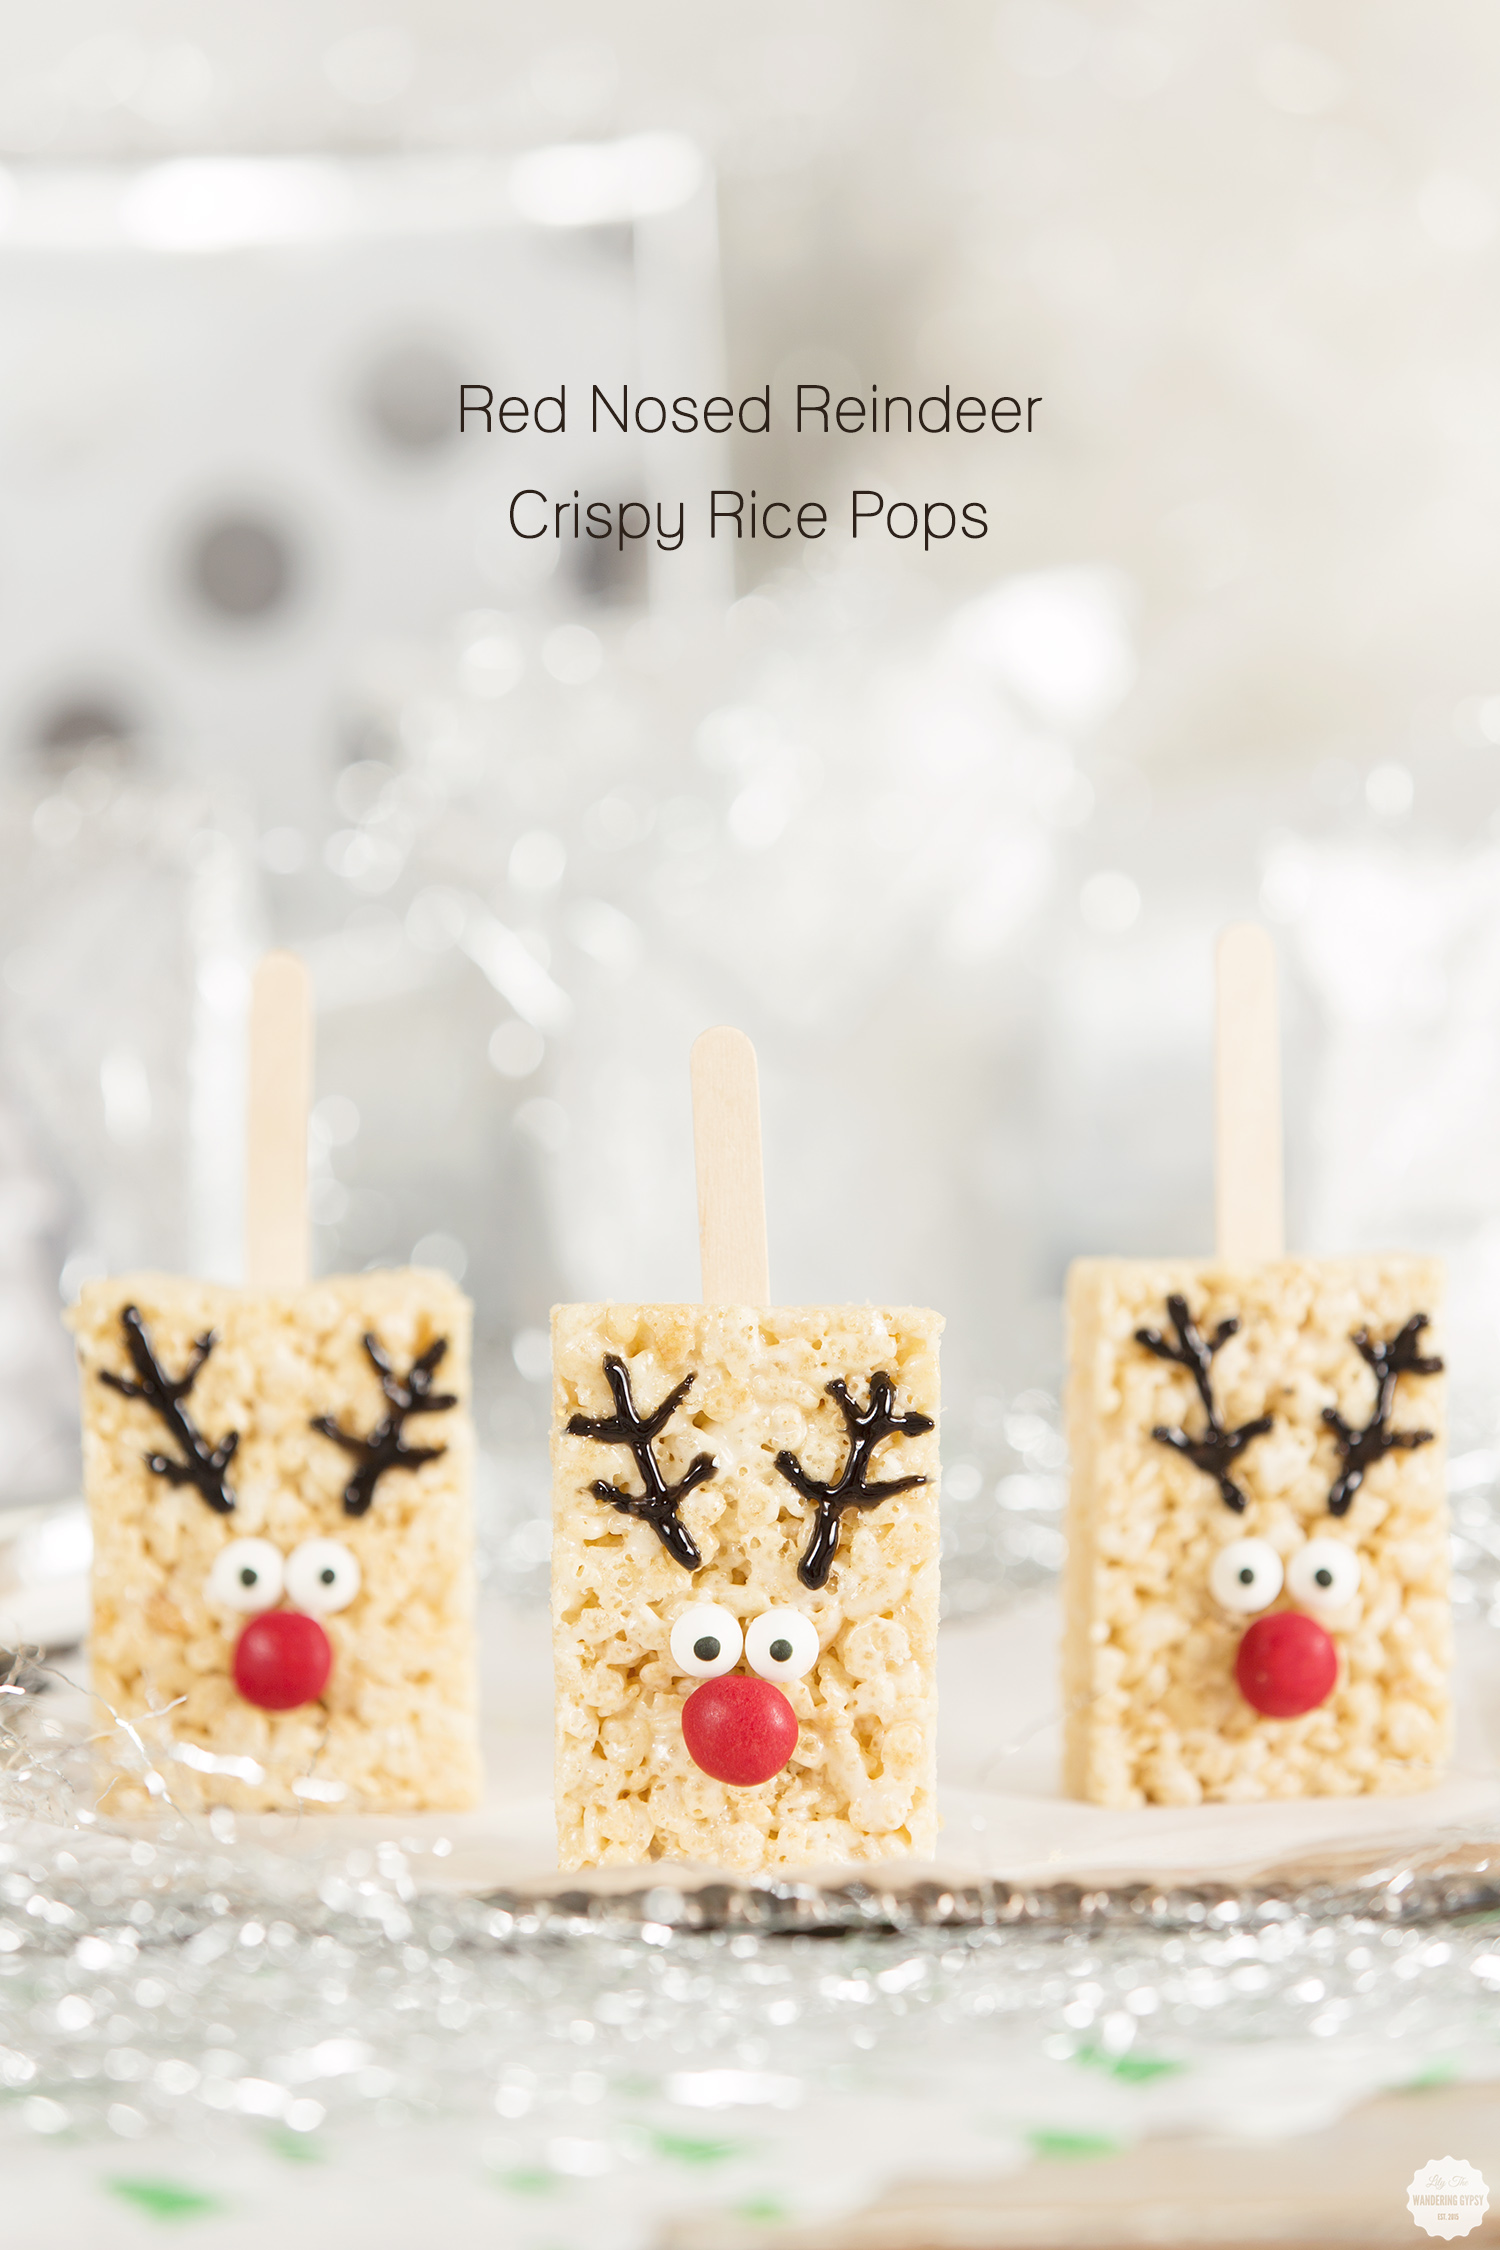 Rice Cereal Reindeer Treats Recipe